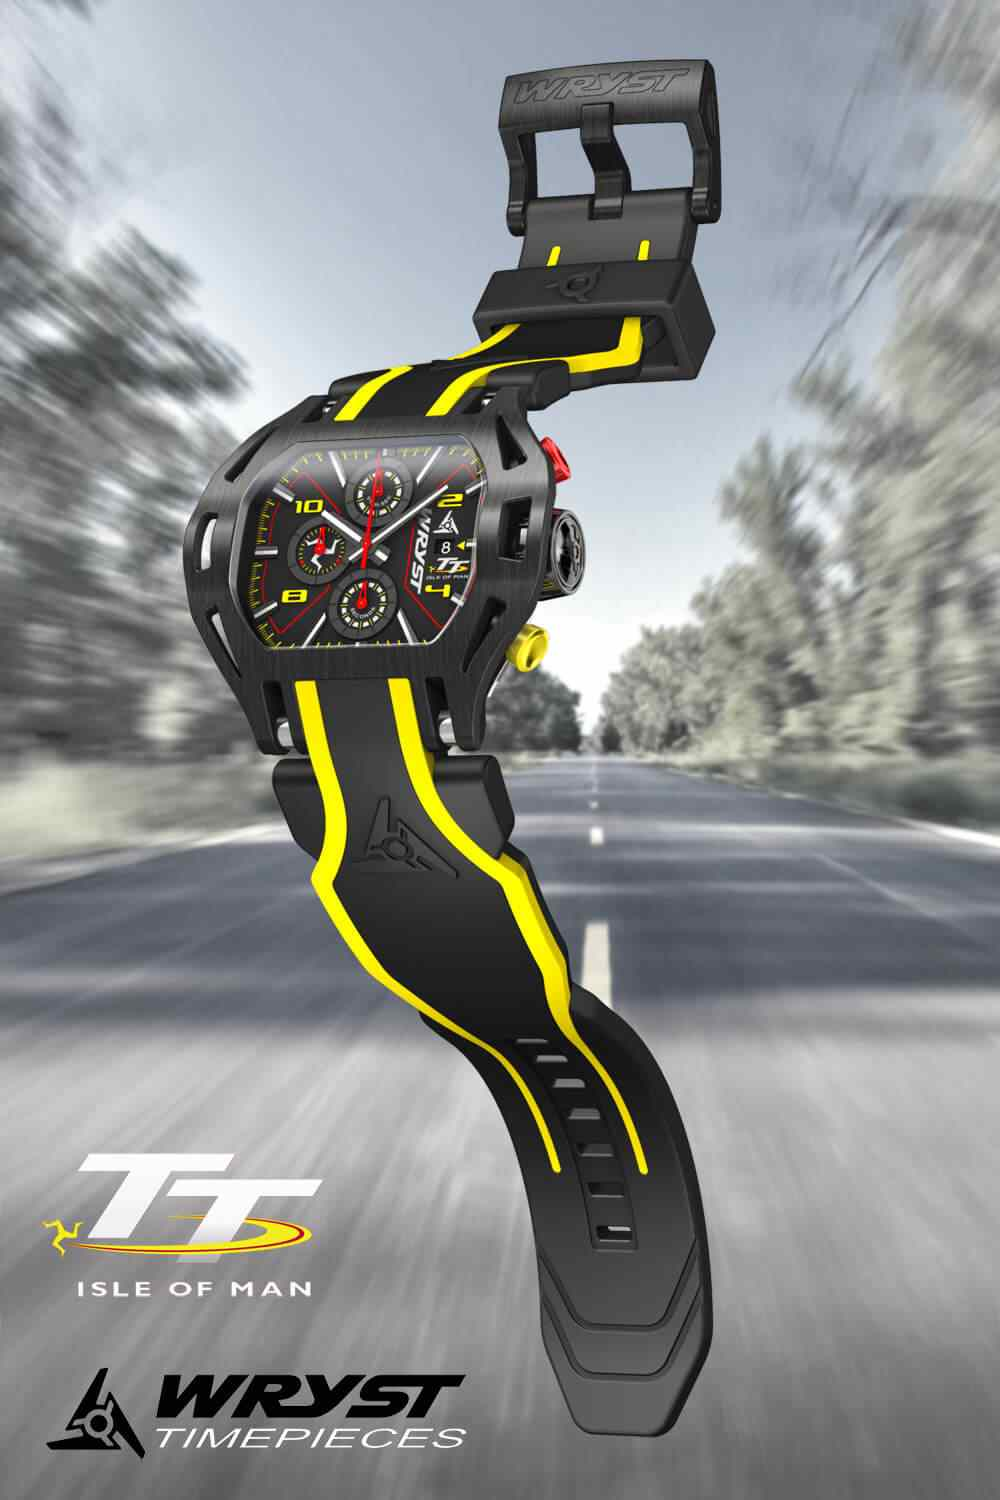 Wryst Isle of Man TT Watch